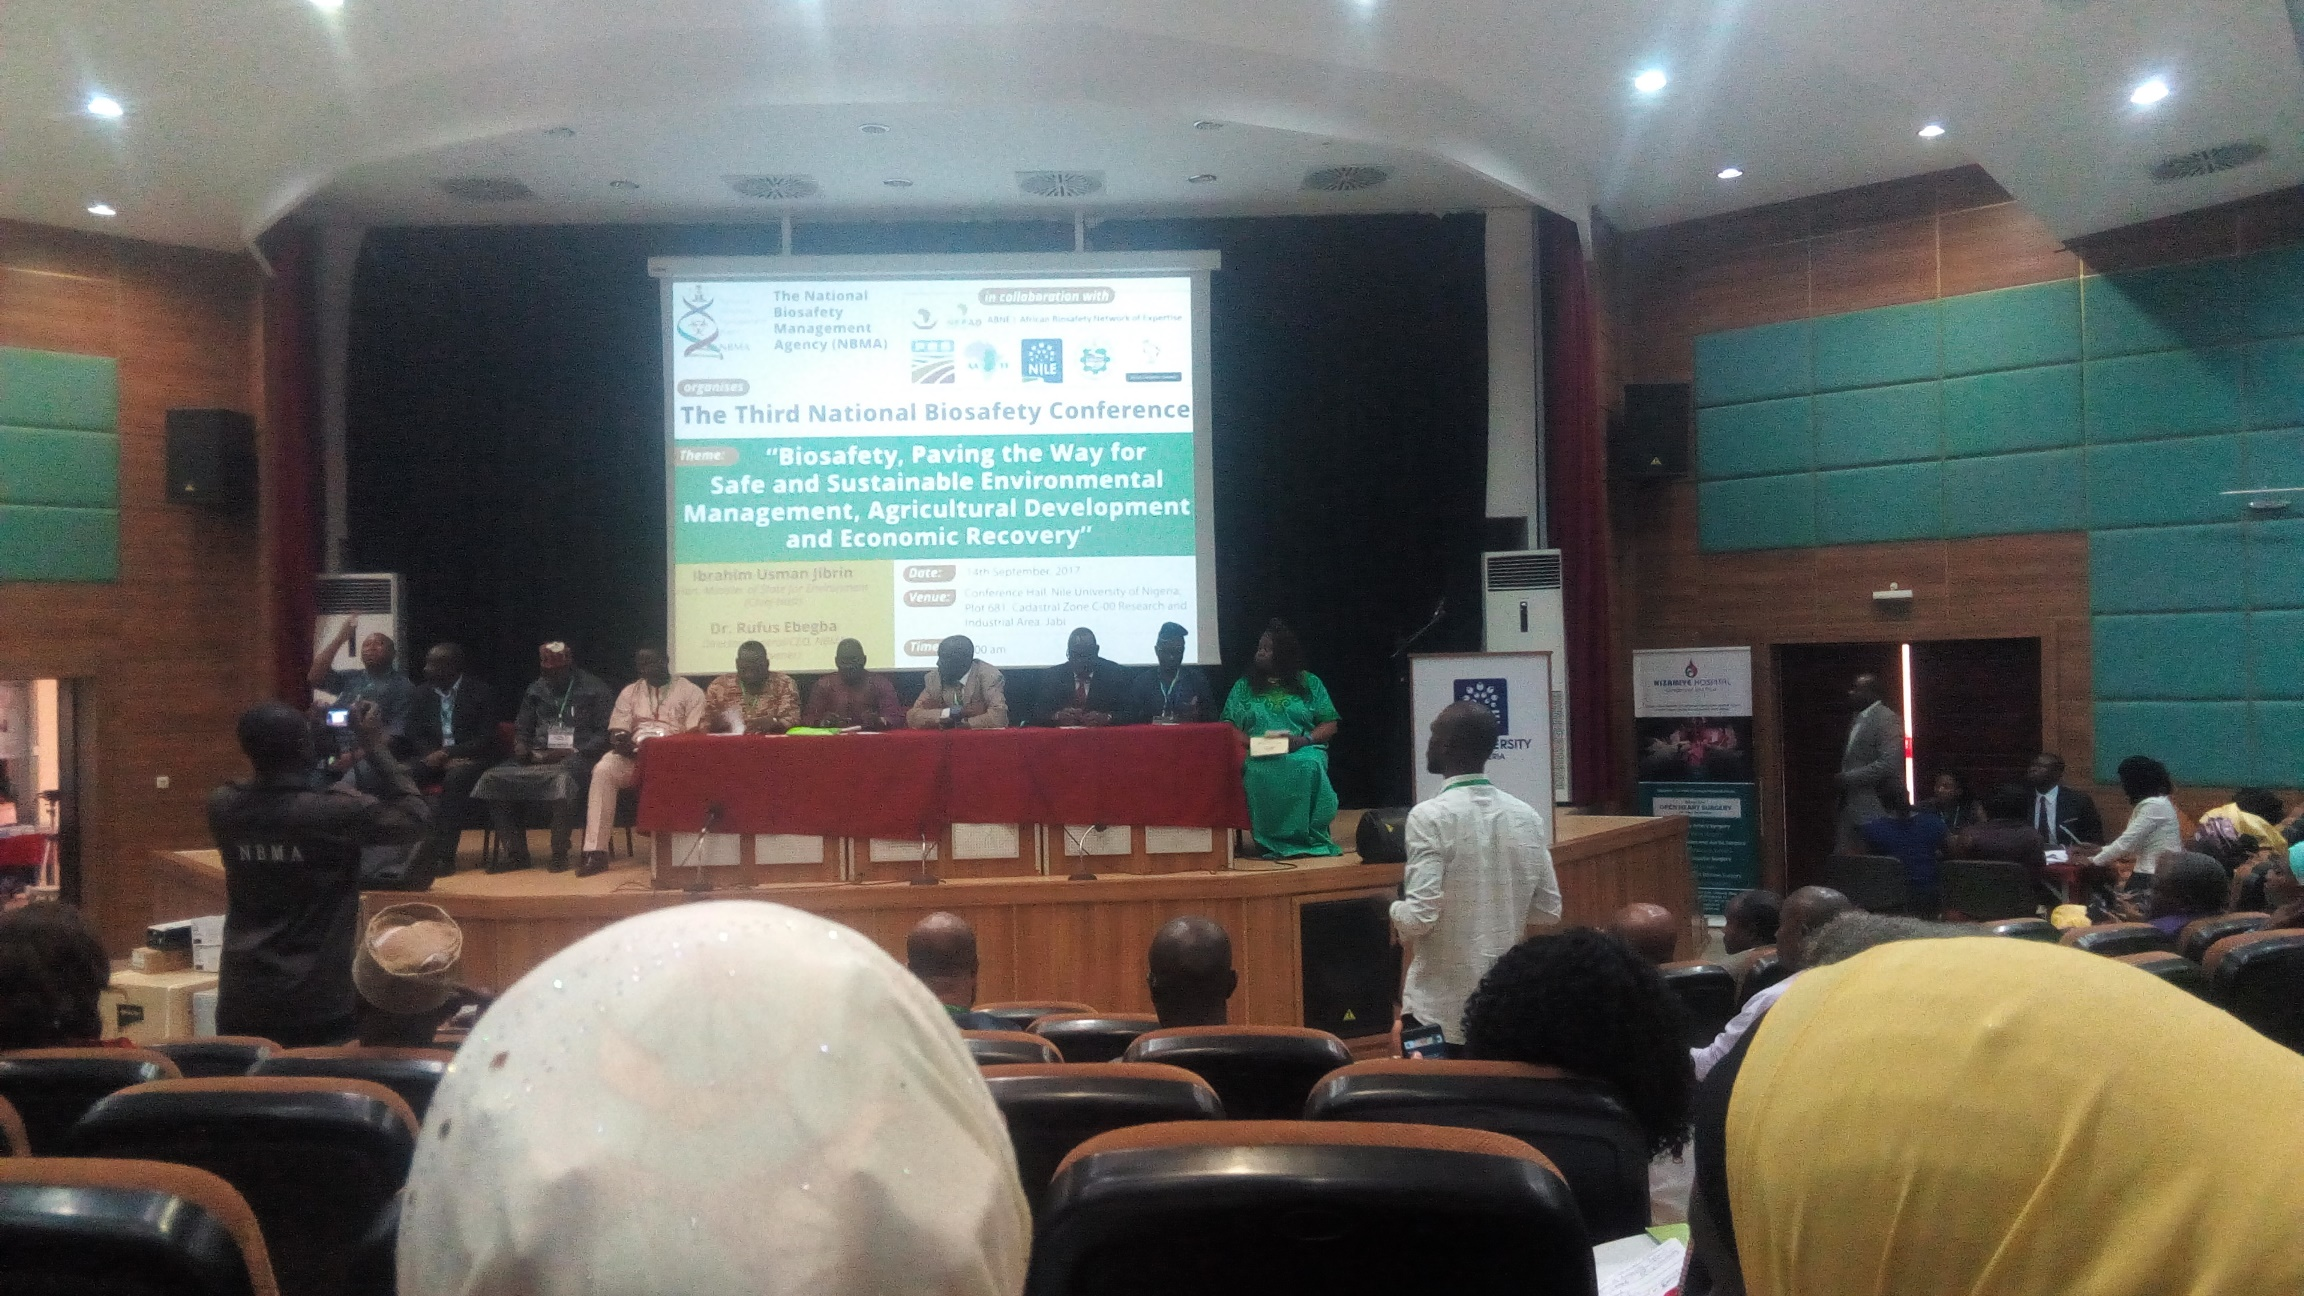 The conference panelists: Including Dr Rufus Ebegba (DG NBMA) , Prof Bamidele Solomon (for  NABDA DG) Prof. Diran Makinde, Dr. Godwin Uyi Ojo (environmental right action/friends of the earth nigeriaAlex Abut - Communications Officers PBS/NBM and Edel-Quinn Ijeoma Agbaegbu (Executive President EWHC)